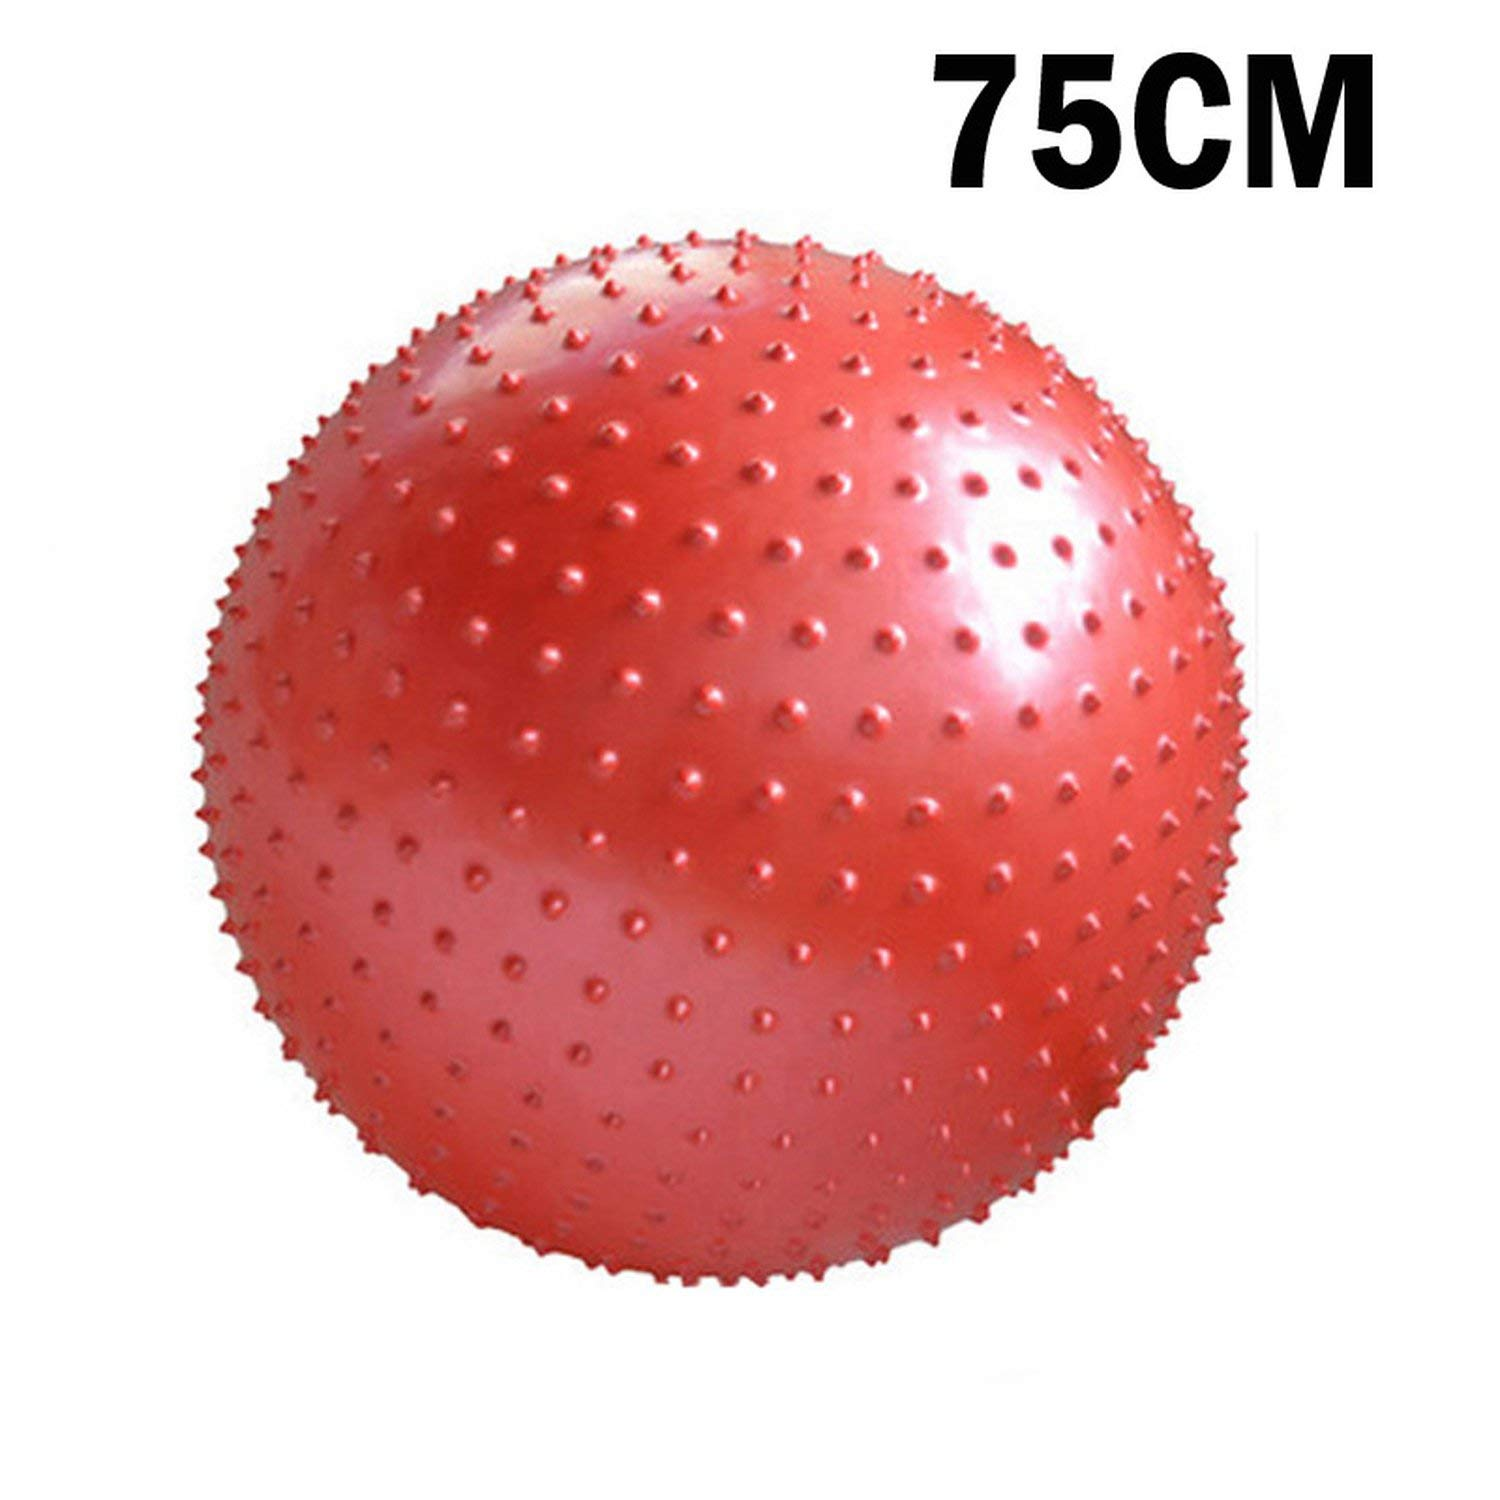 75CM Red One Size Sports Yoga Ball Point Fitness Gym Balance Ball Exercise Workout Barbed Massage Ball 55cm 65cm 75cm 85cm